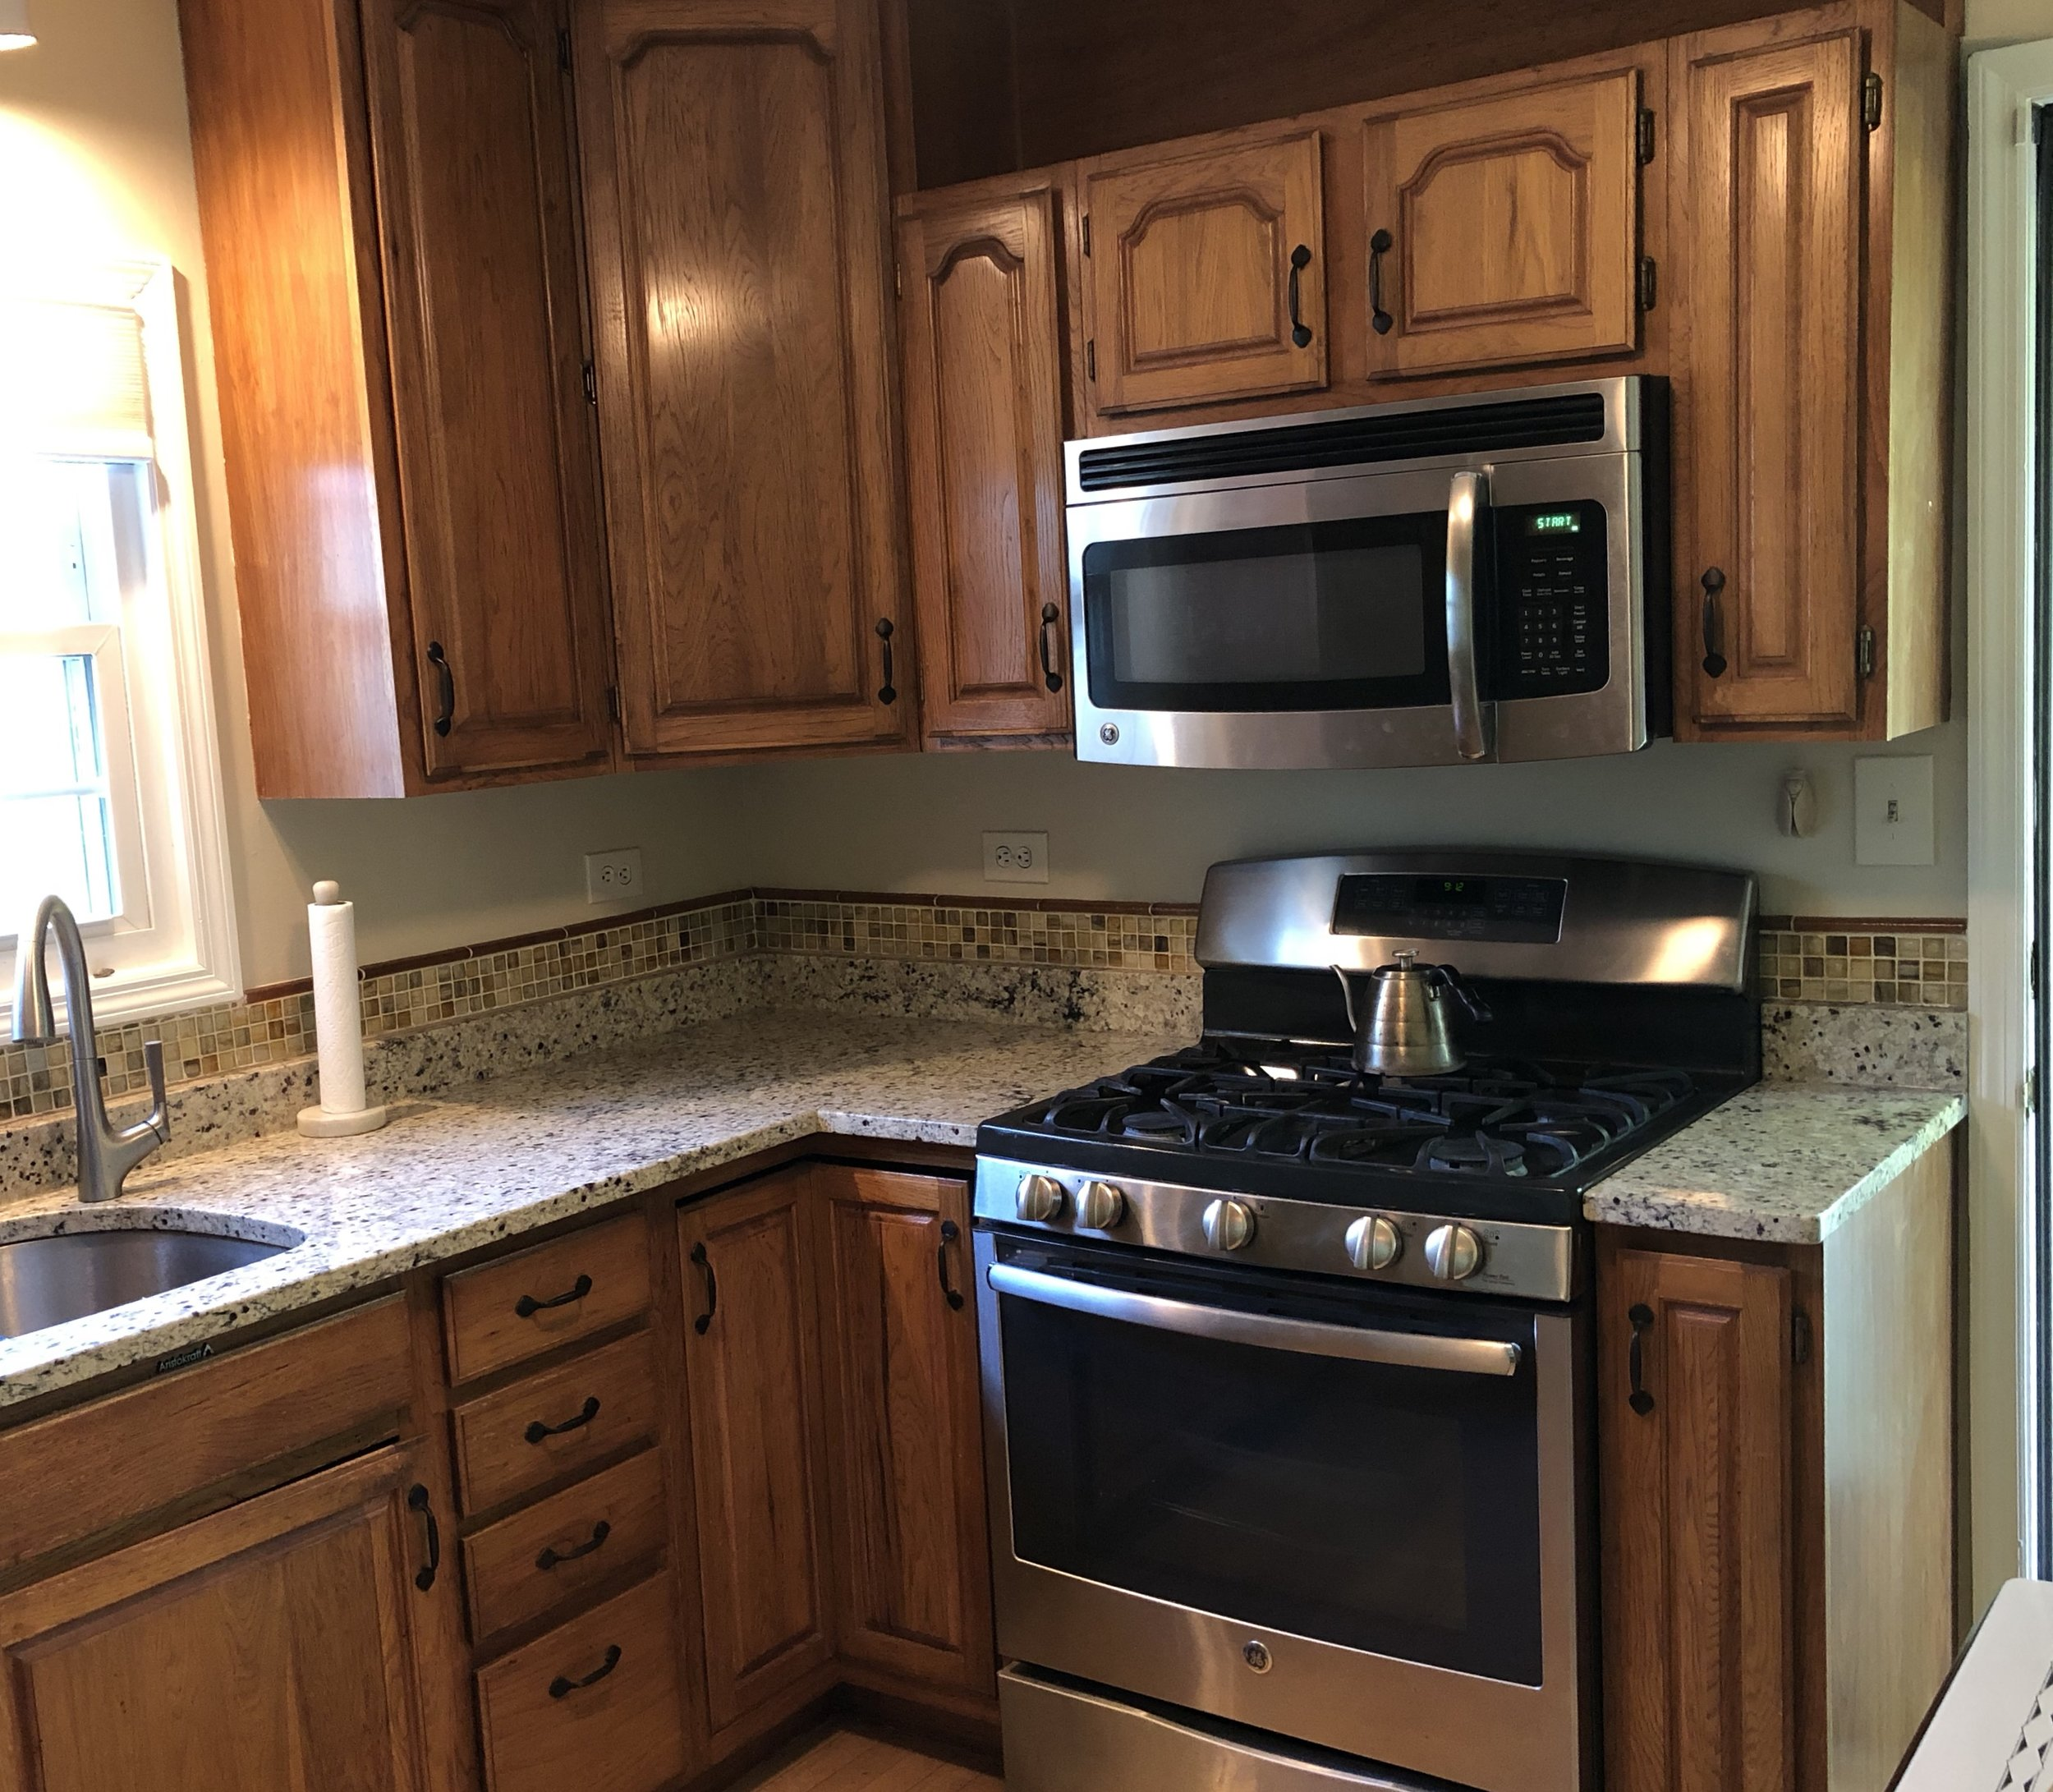 This Delmar homeowner was elated with her painted cabinets.